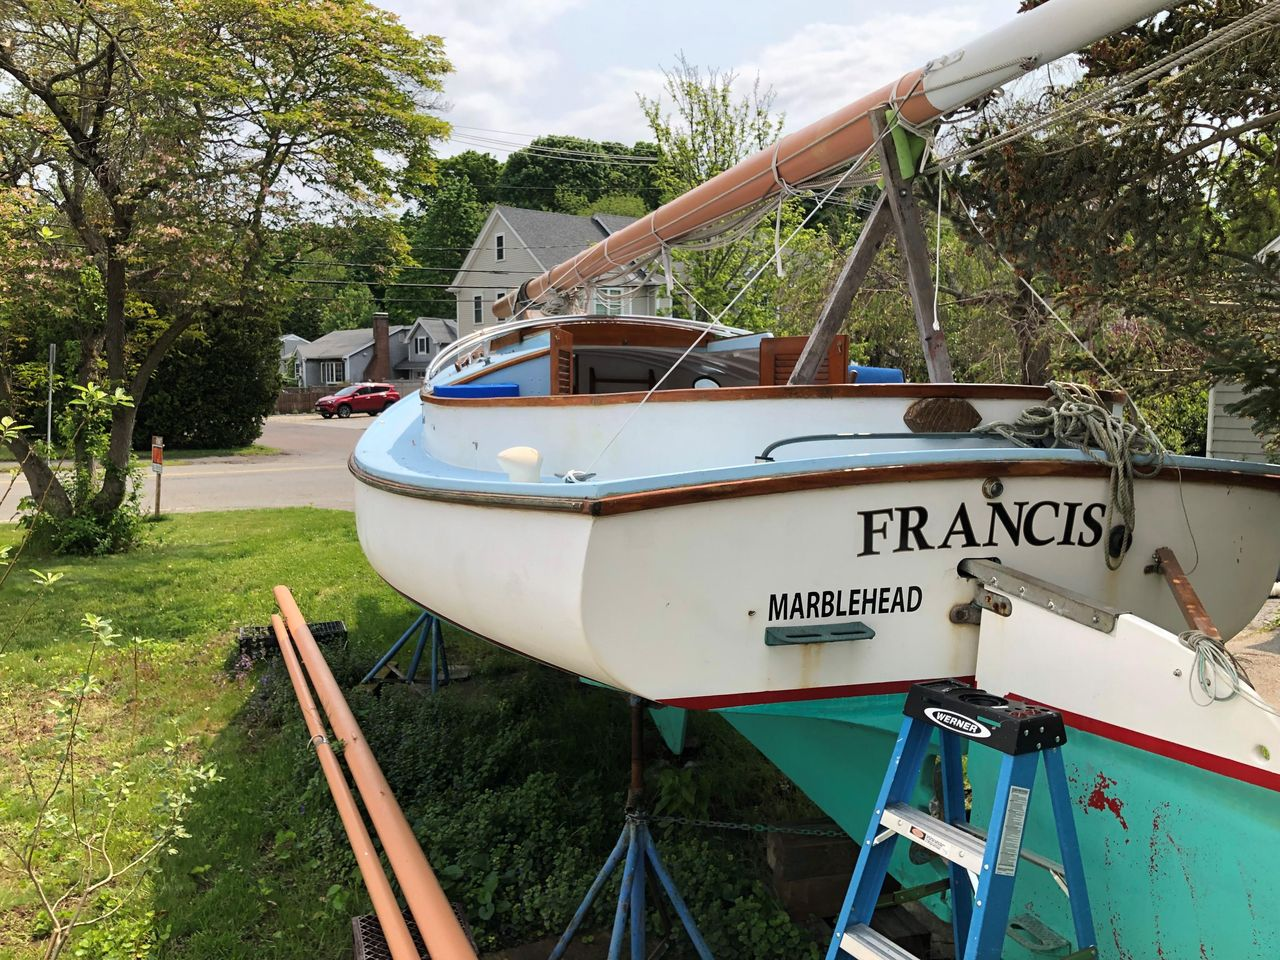 1969 Used Marshall 22 Cruiser Sailboat For Sale - $19,000